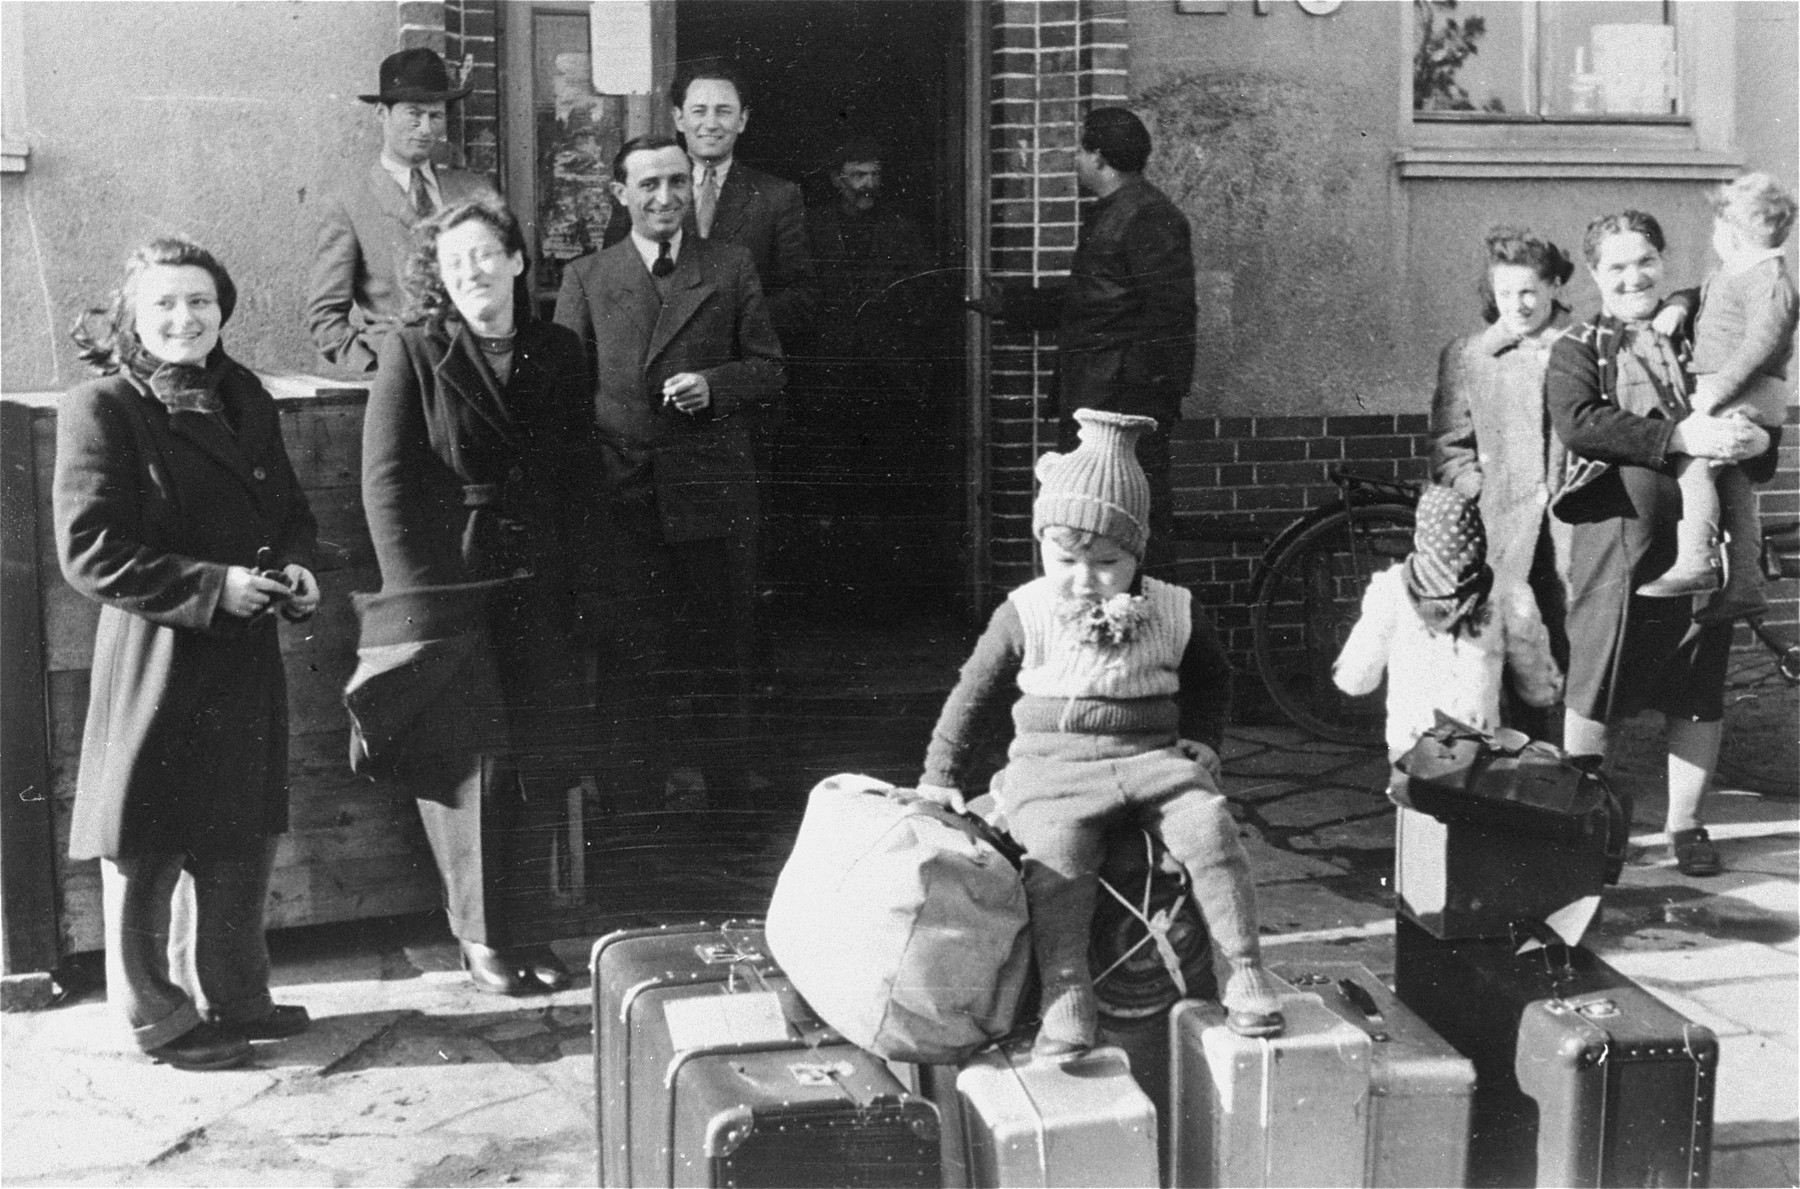 Departing DPS from the Bergen-Belsen camp wait with their luggage in front of their living quarters.  The DPs are on their way to Palestine.